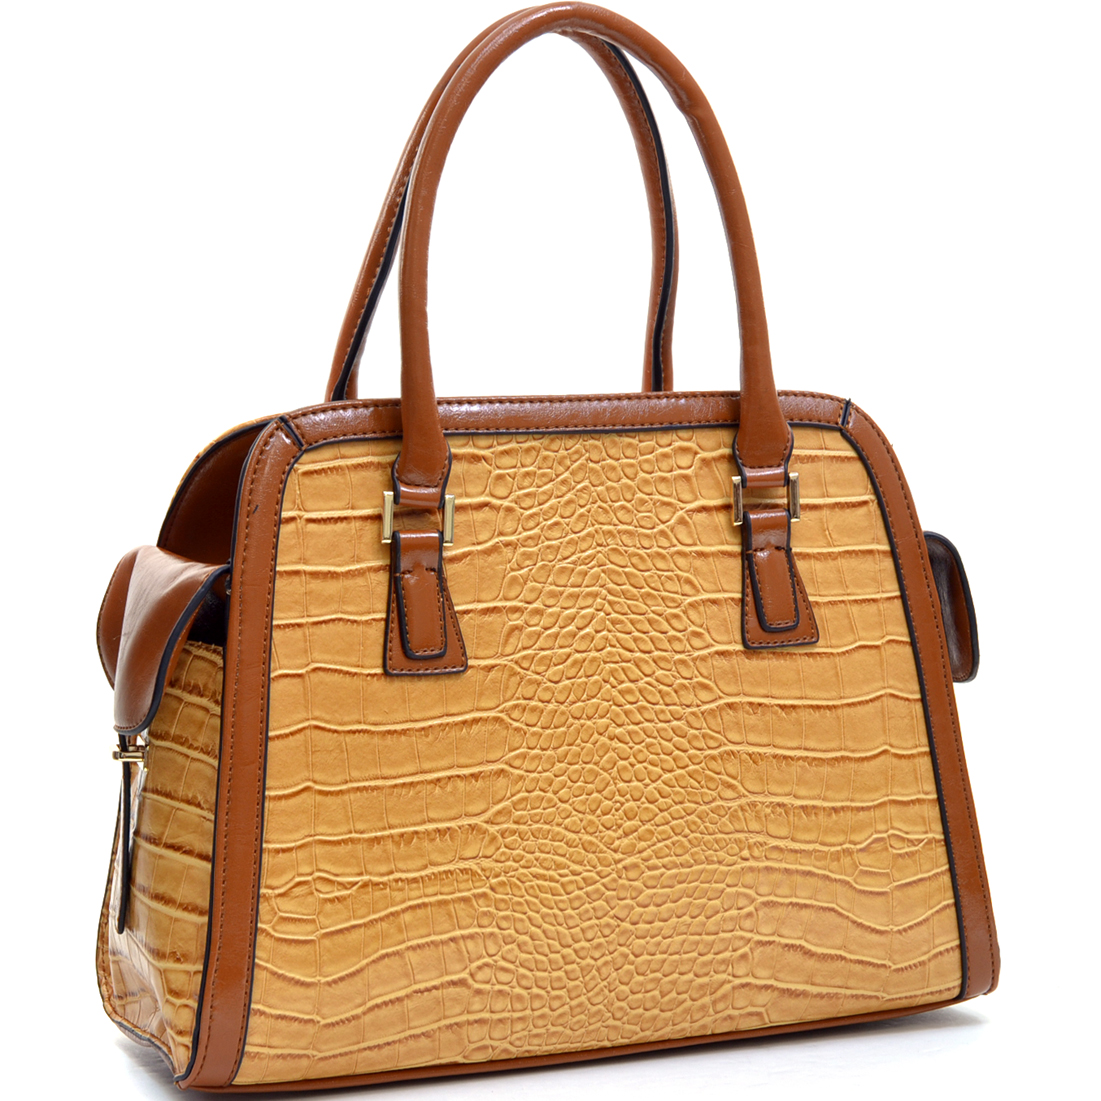 Dasein®Croc Textured Fin Satchel w/Removable Shoulder Strap